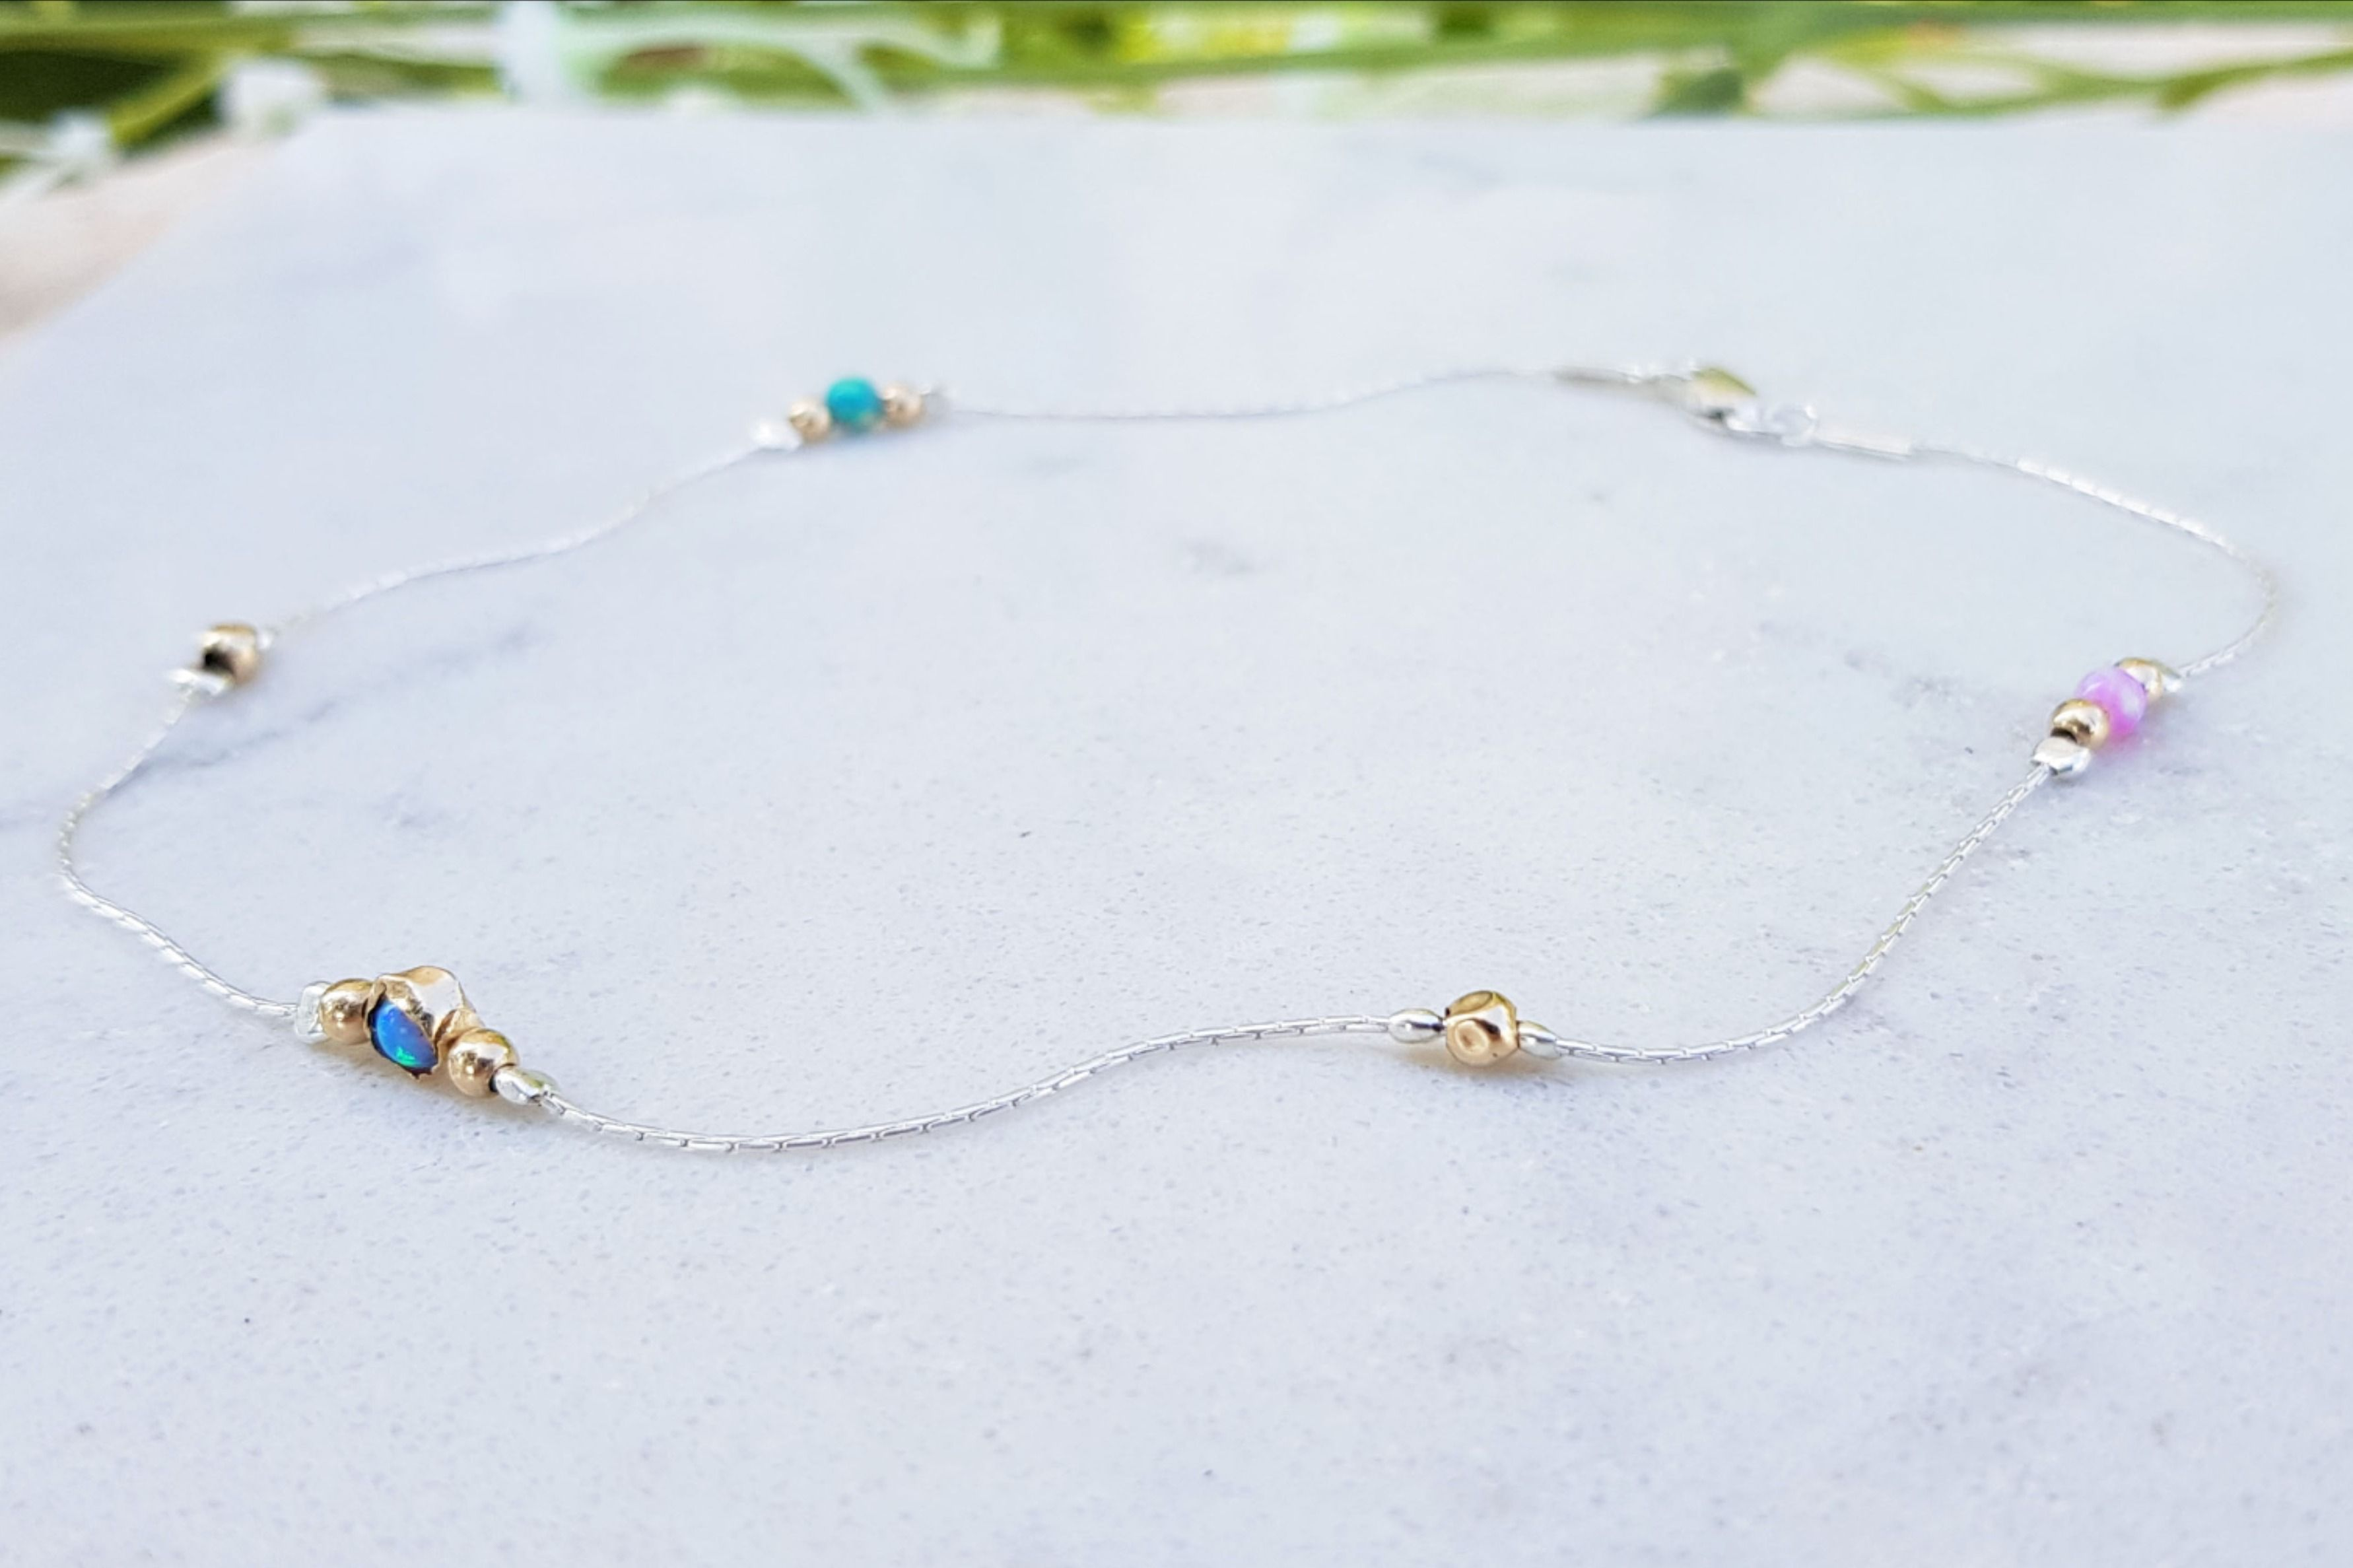 Dainty Turquoise Anklet,Beach Anklet,14k Gold Anklet,Pink,Blue Opal Bead Anklet,Ankle Opal Jewelry,Anklet Bracelet,Foot Jewelry Beach